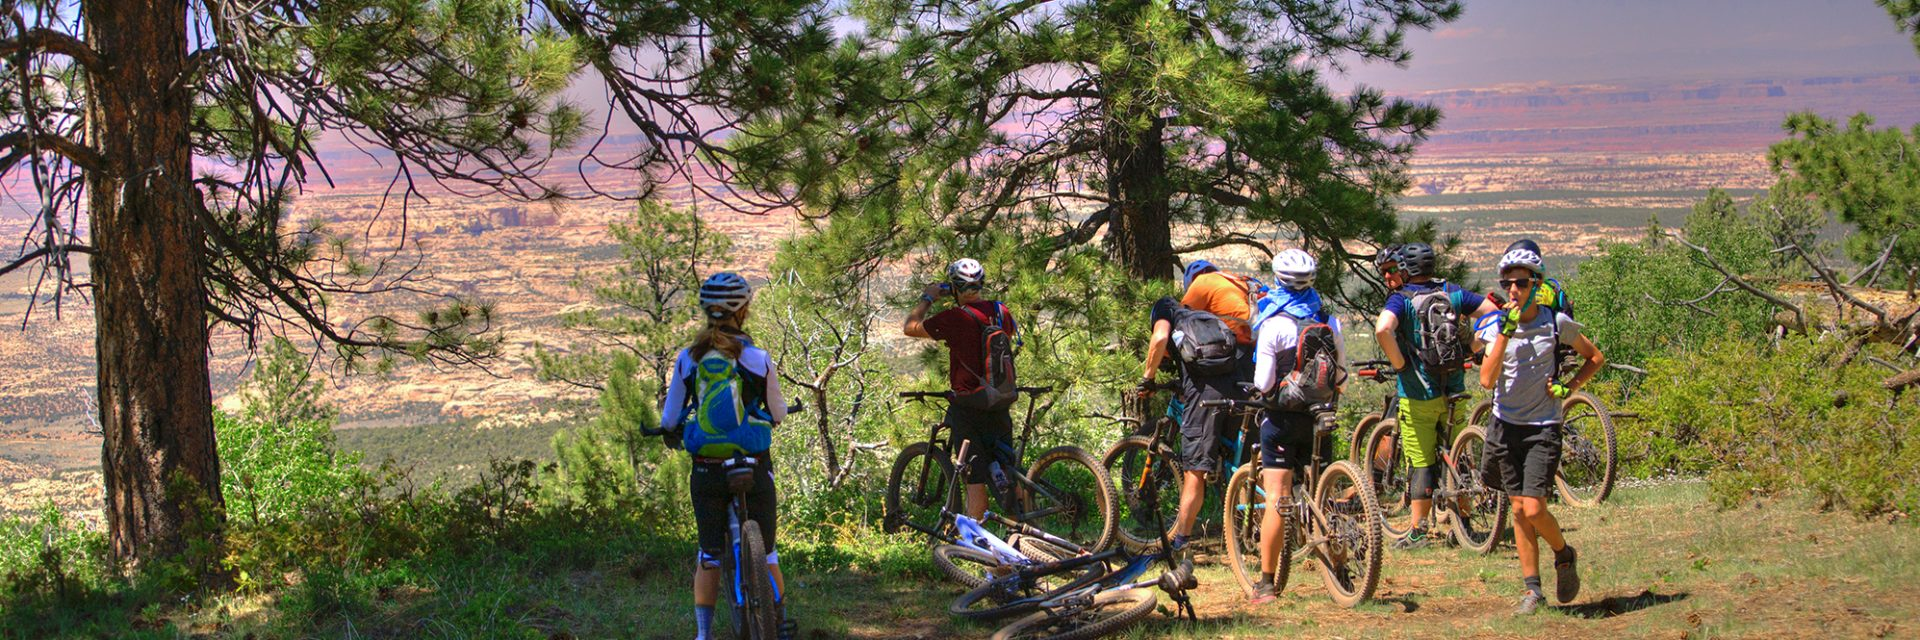 Bears Ears riders arrive at Camp 2 off the North Point Road